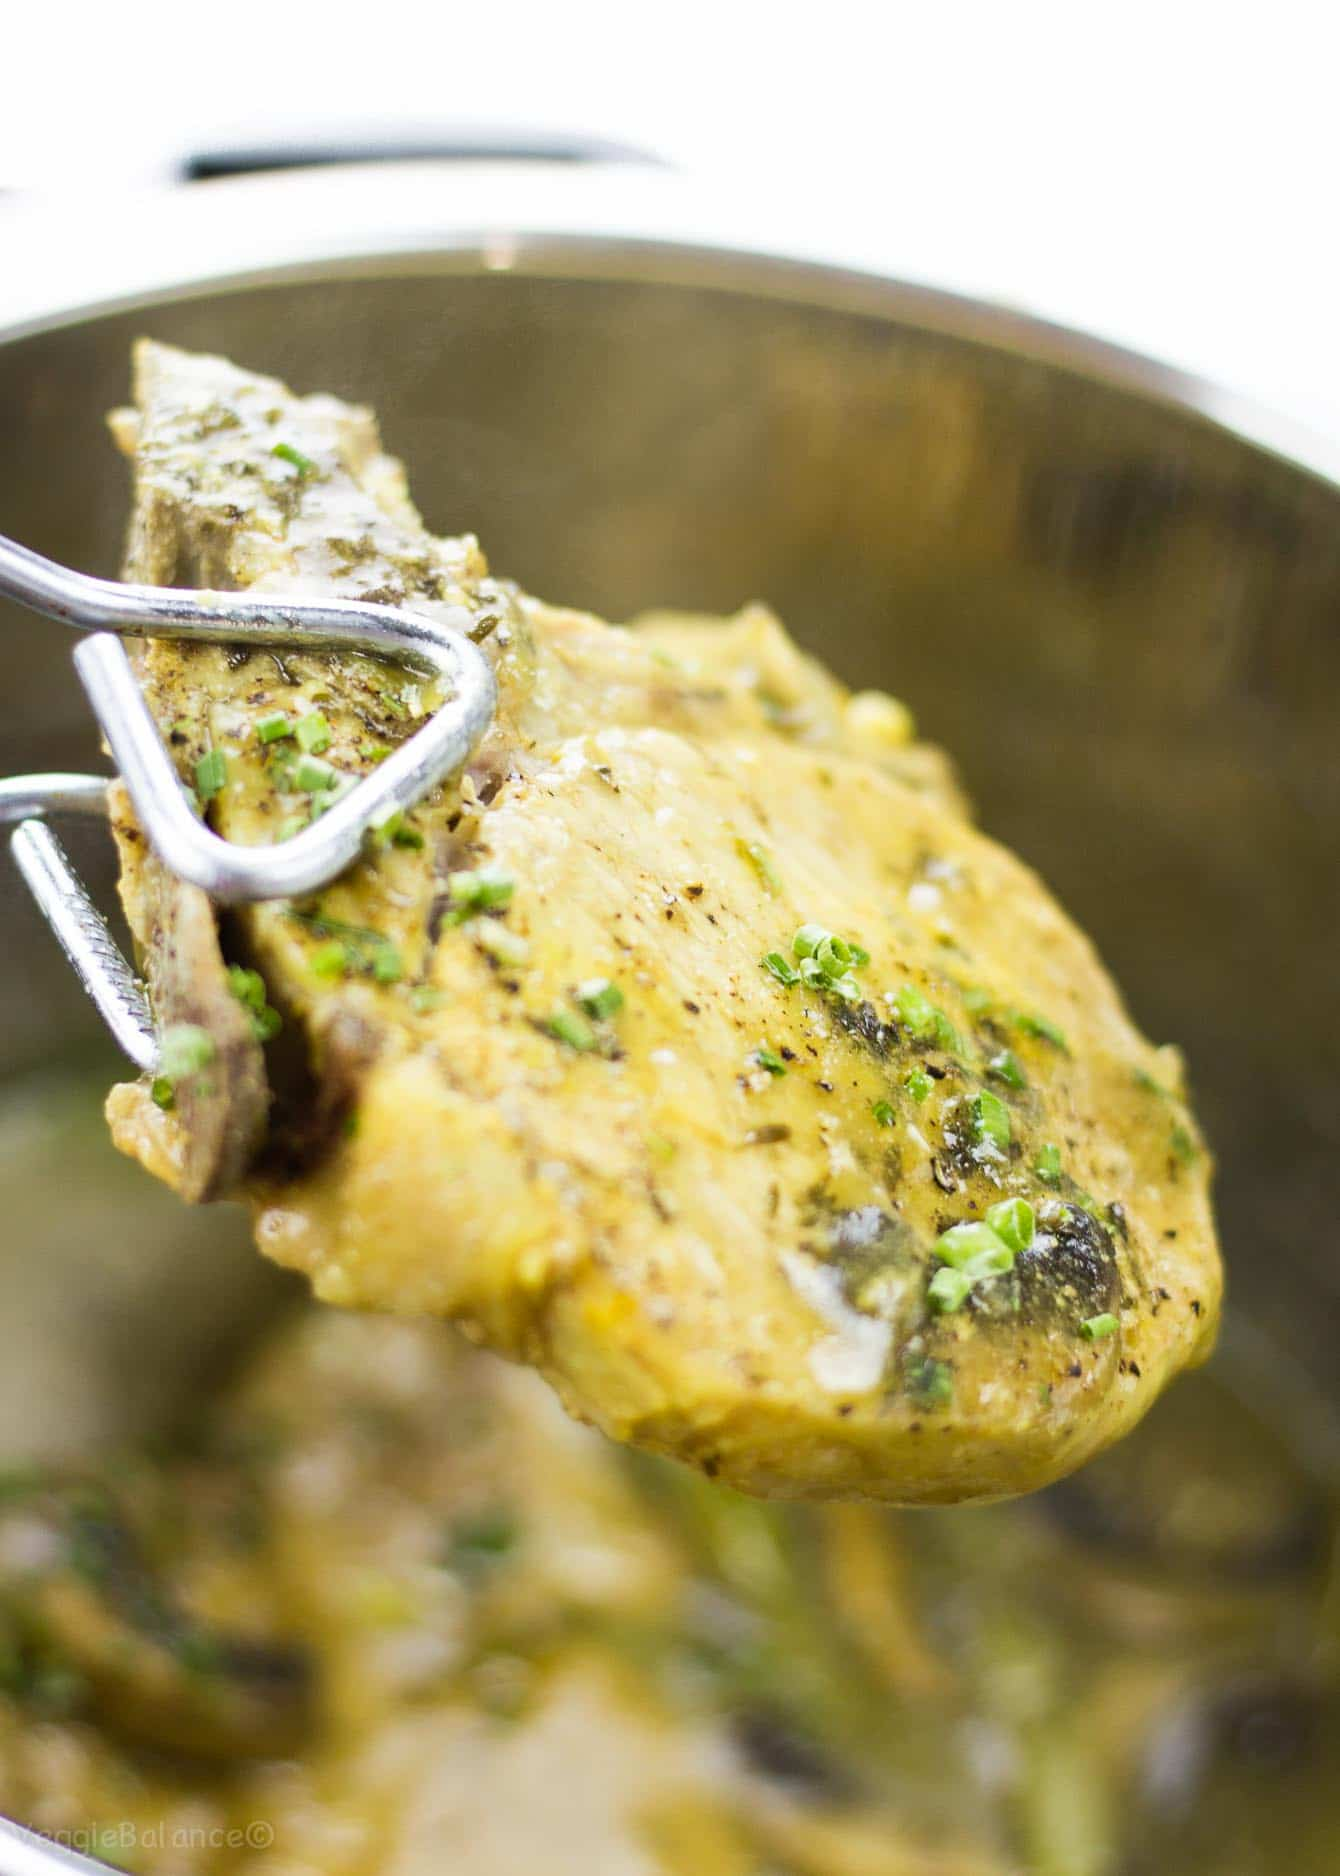 Pressure Cooker Pork Chops cooked in a honey mustard sauce.